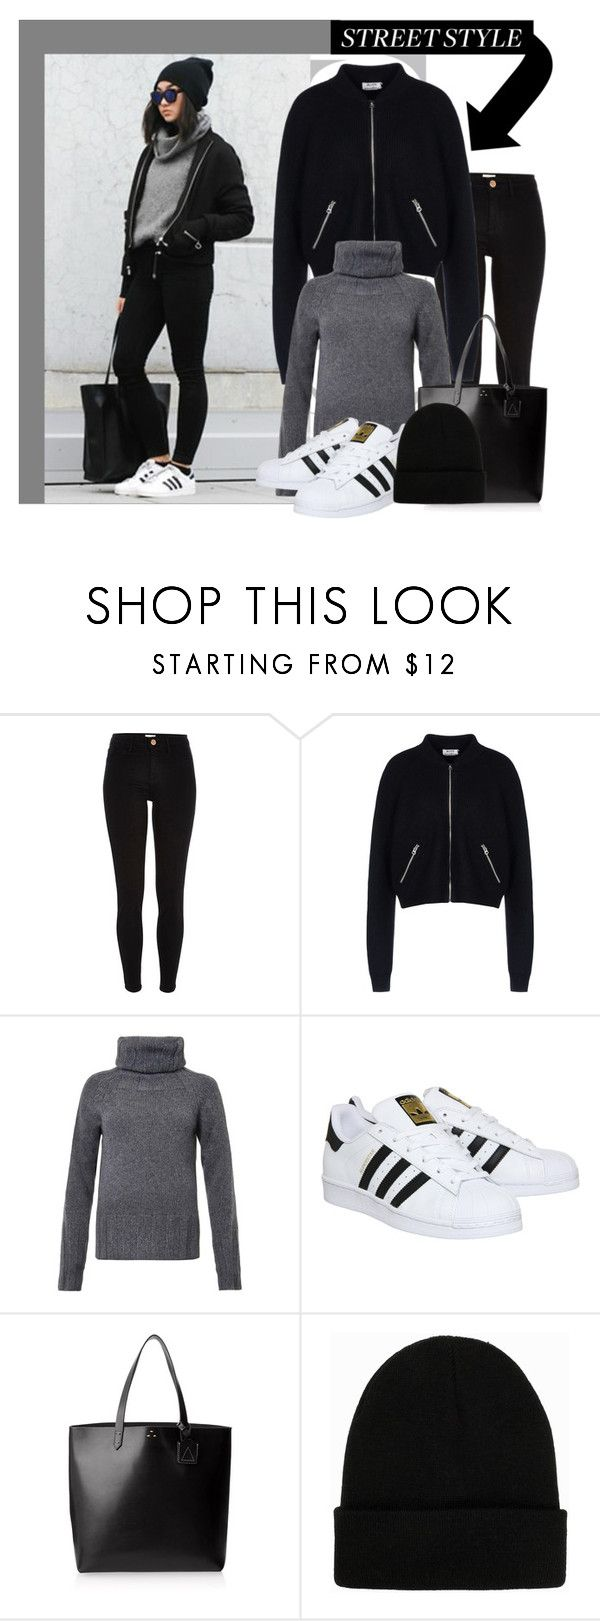 """Untitled #963"" by samha ❤ liked on Polyvore featuring River Island, Acne Studios, Joseph, adidas, Kelsi Dagger Brooklyn and NLY Accessories"